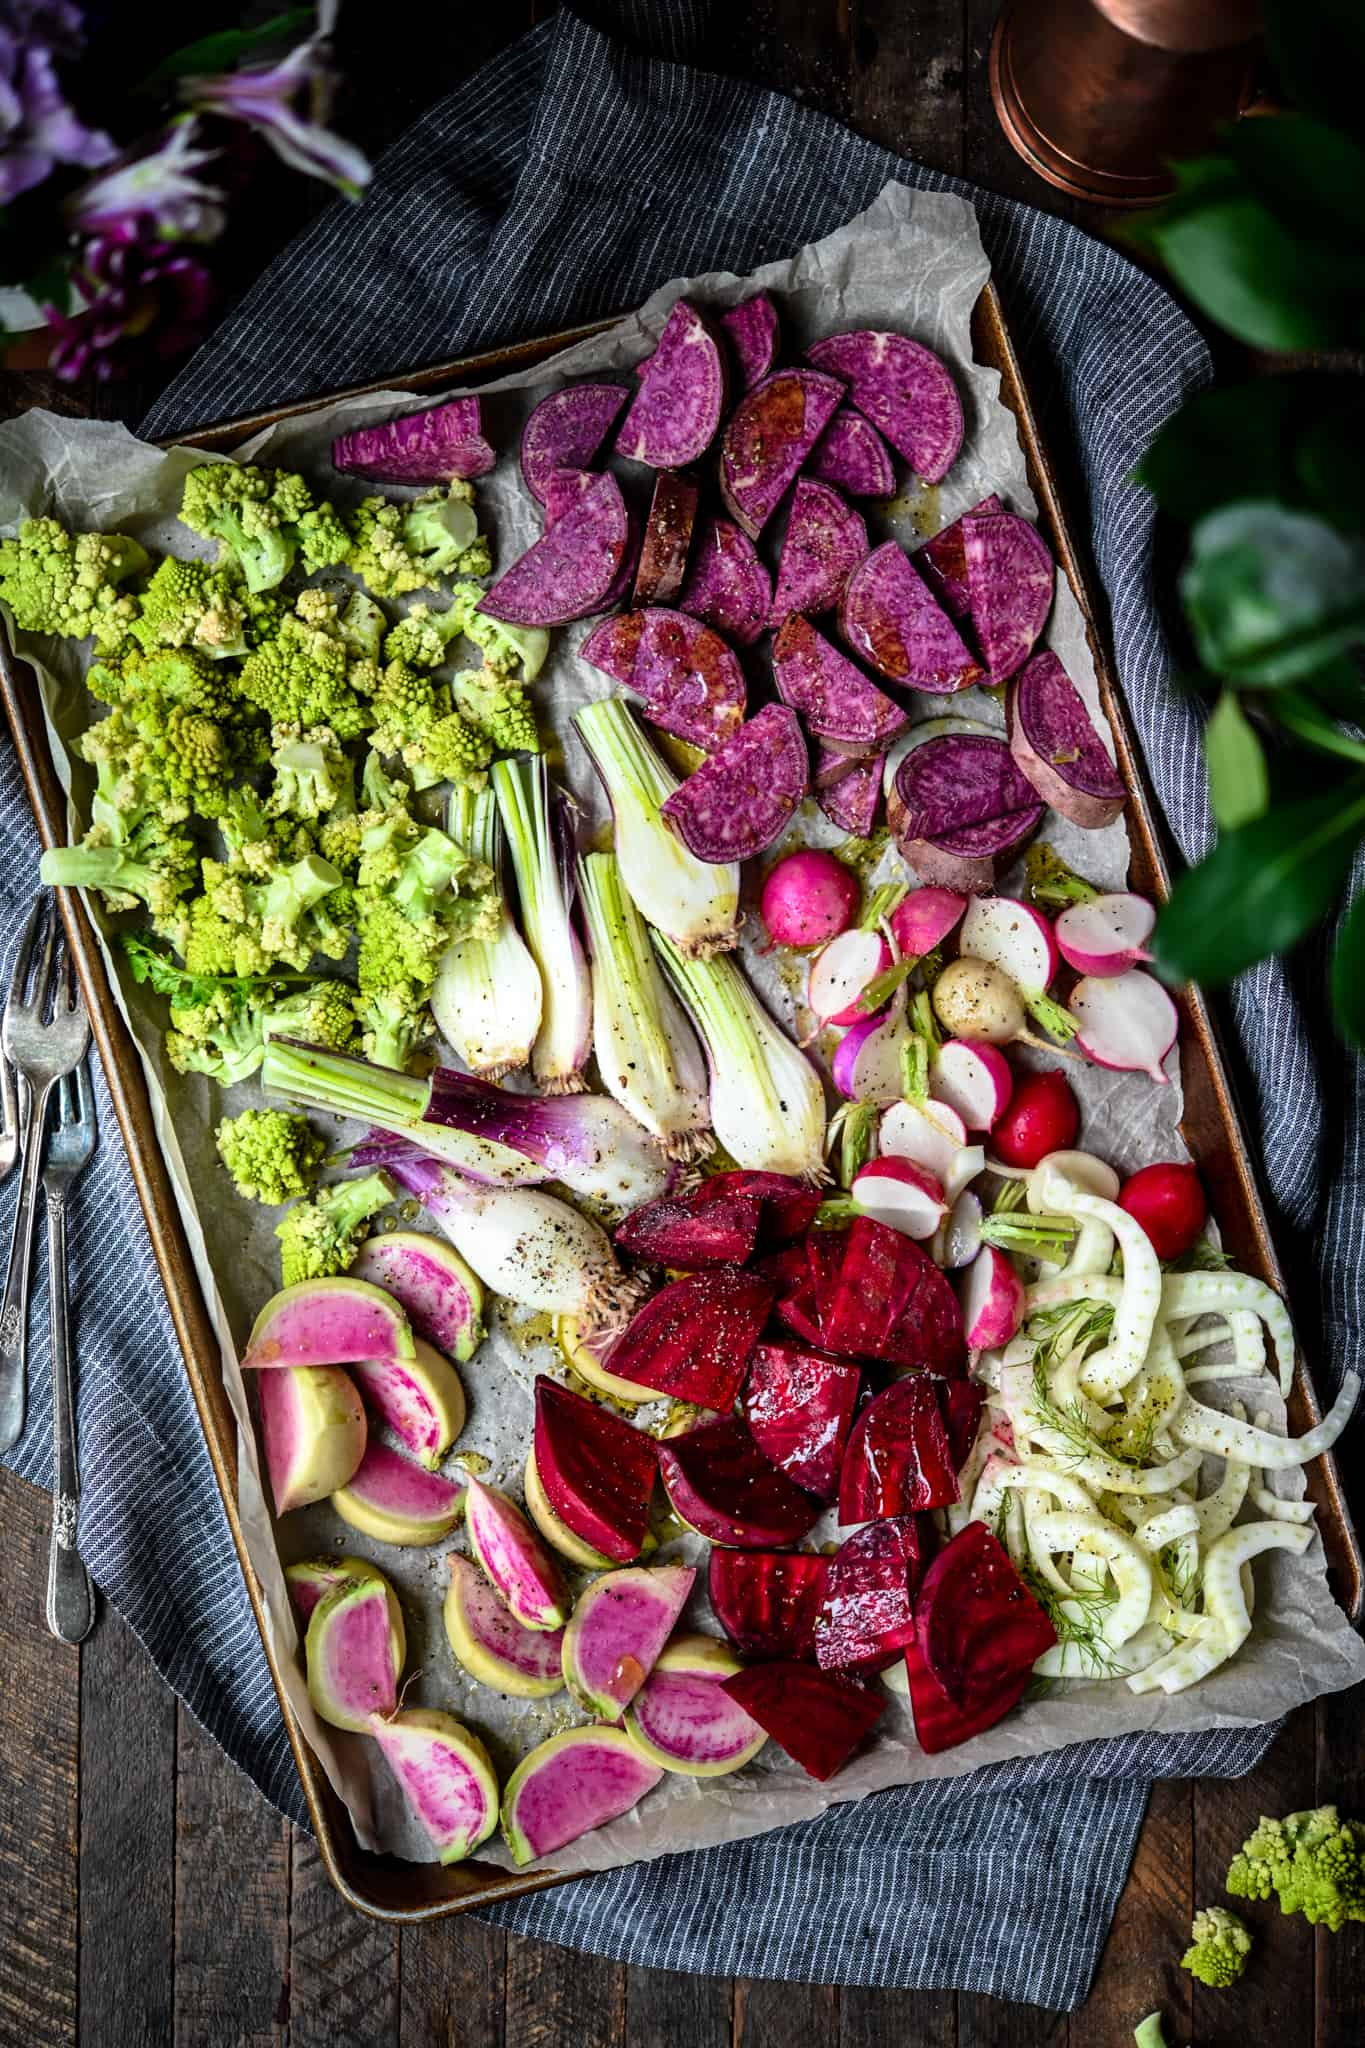 Overhead of sheet pan with uncooked purple, pink and green vegetables